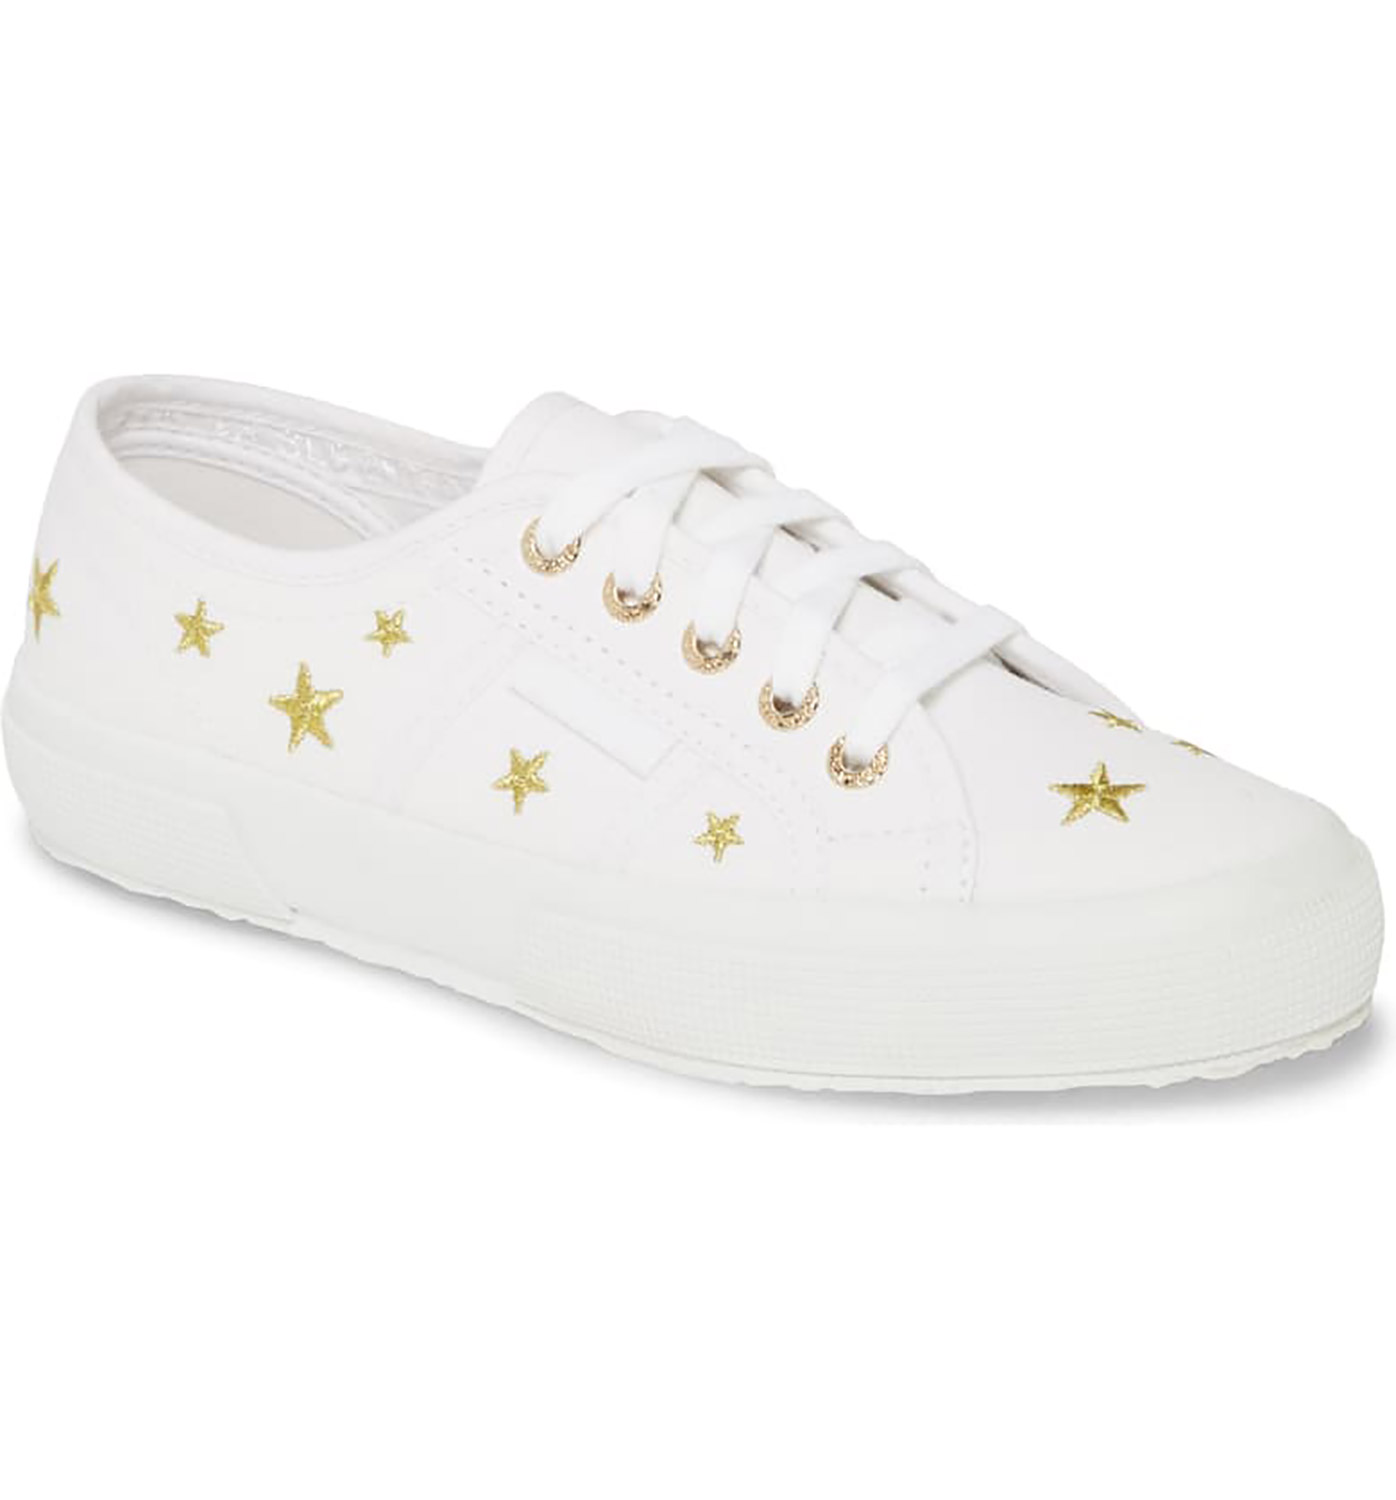 Superga 2750 Embroidered Star Sneaker